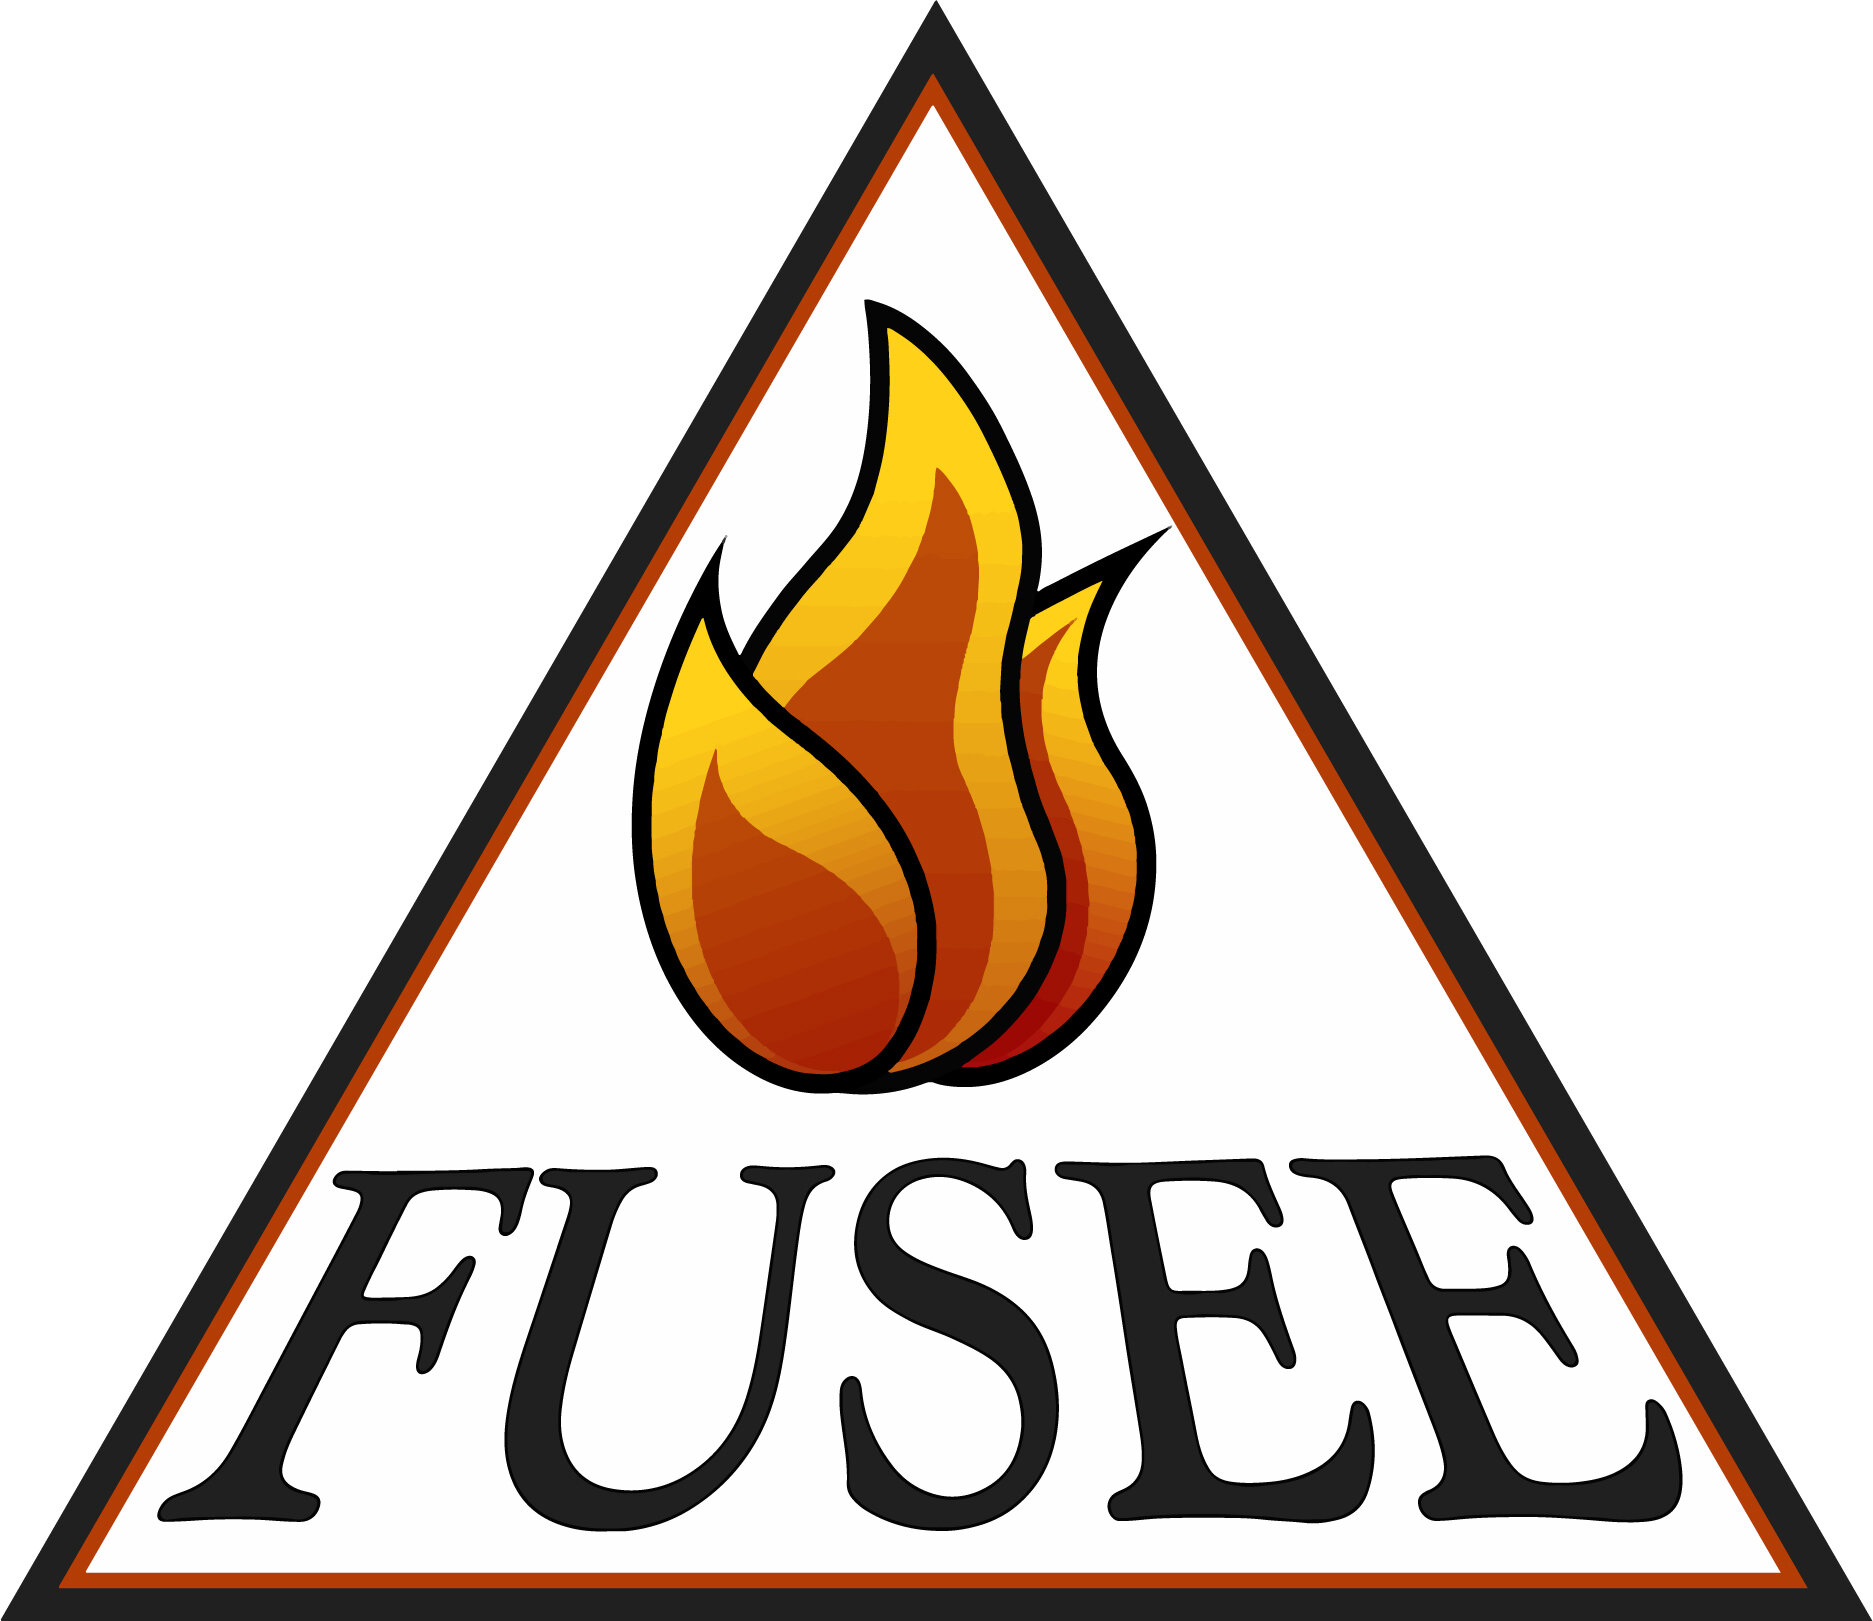 FUSEE Logo triangle only.jpg